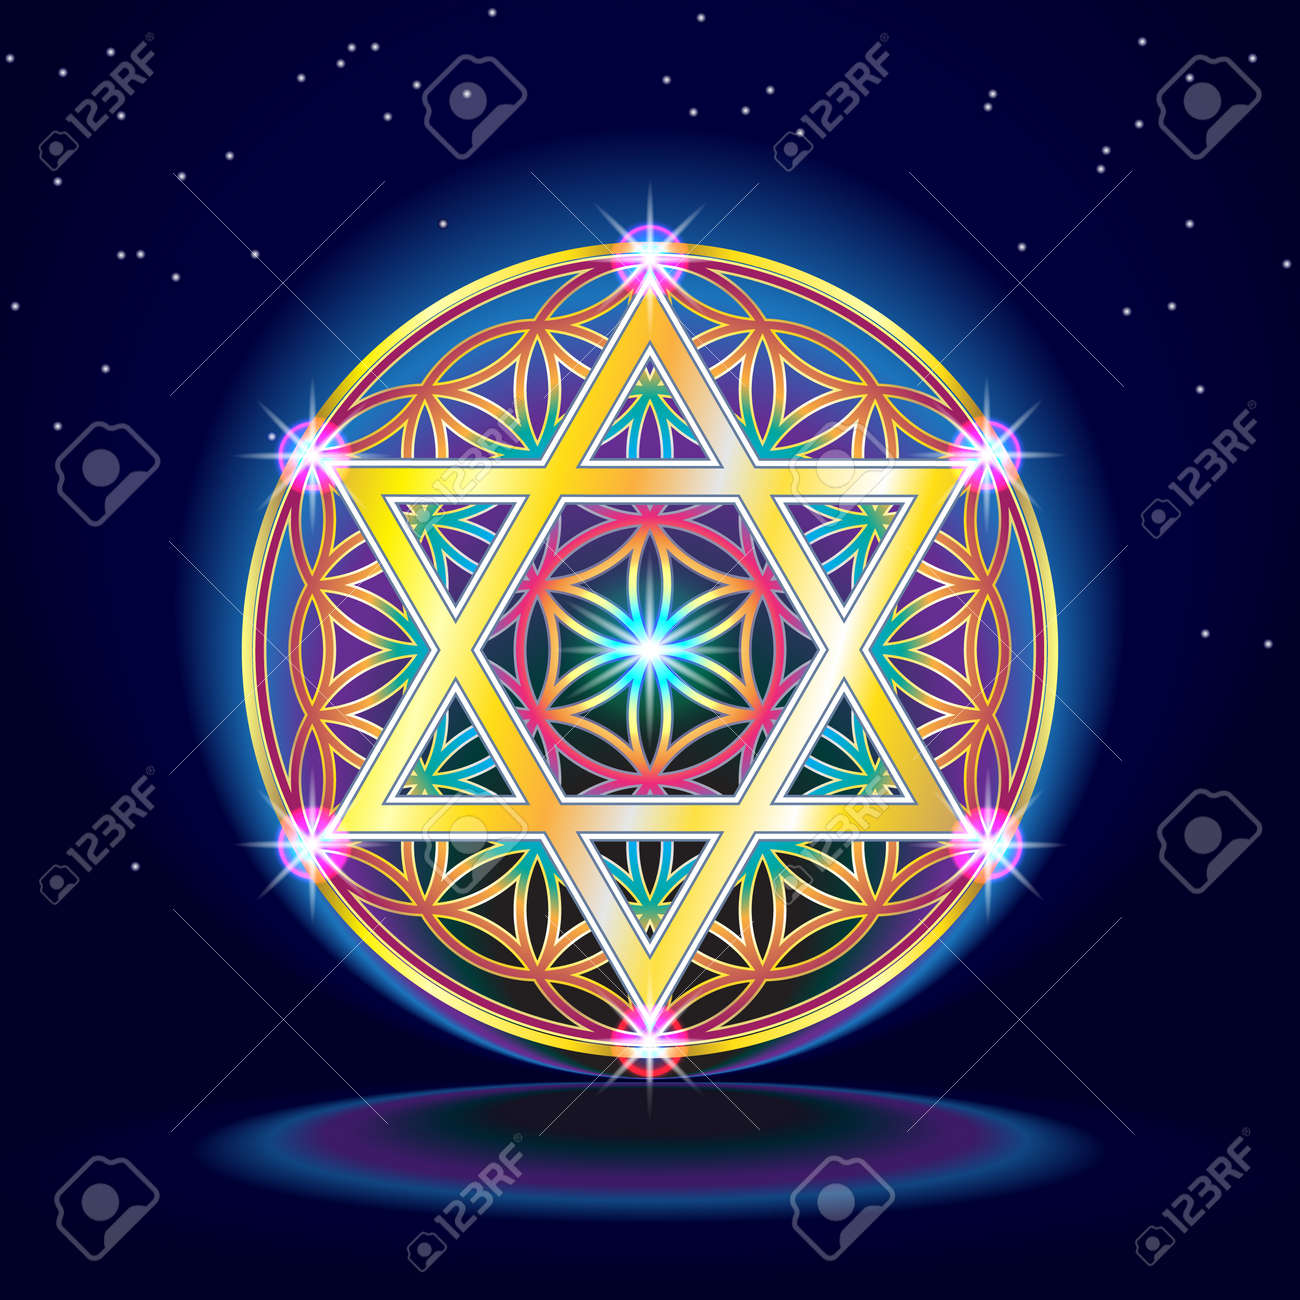 The flower Of Life Banque d'images - 36416787